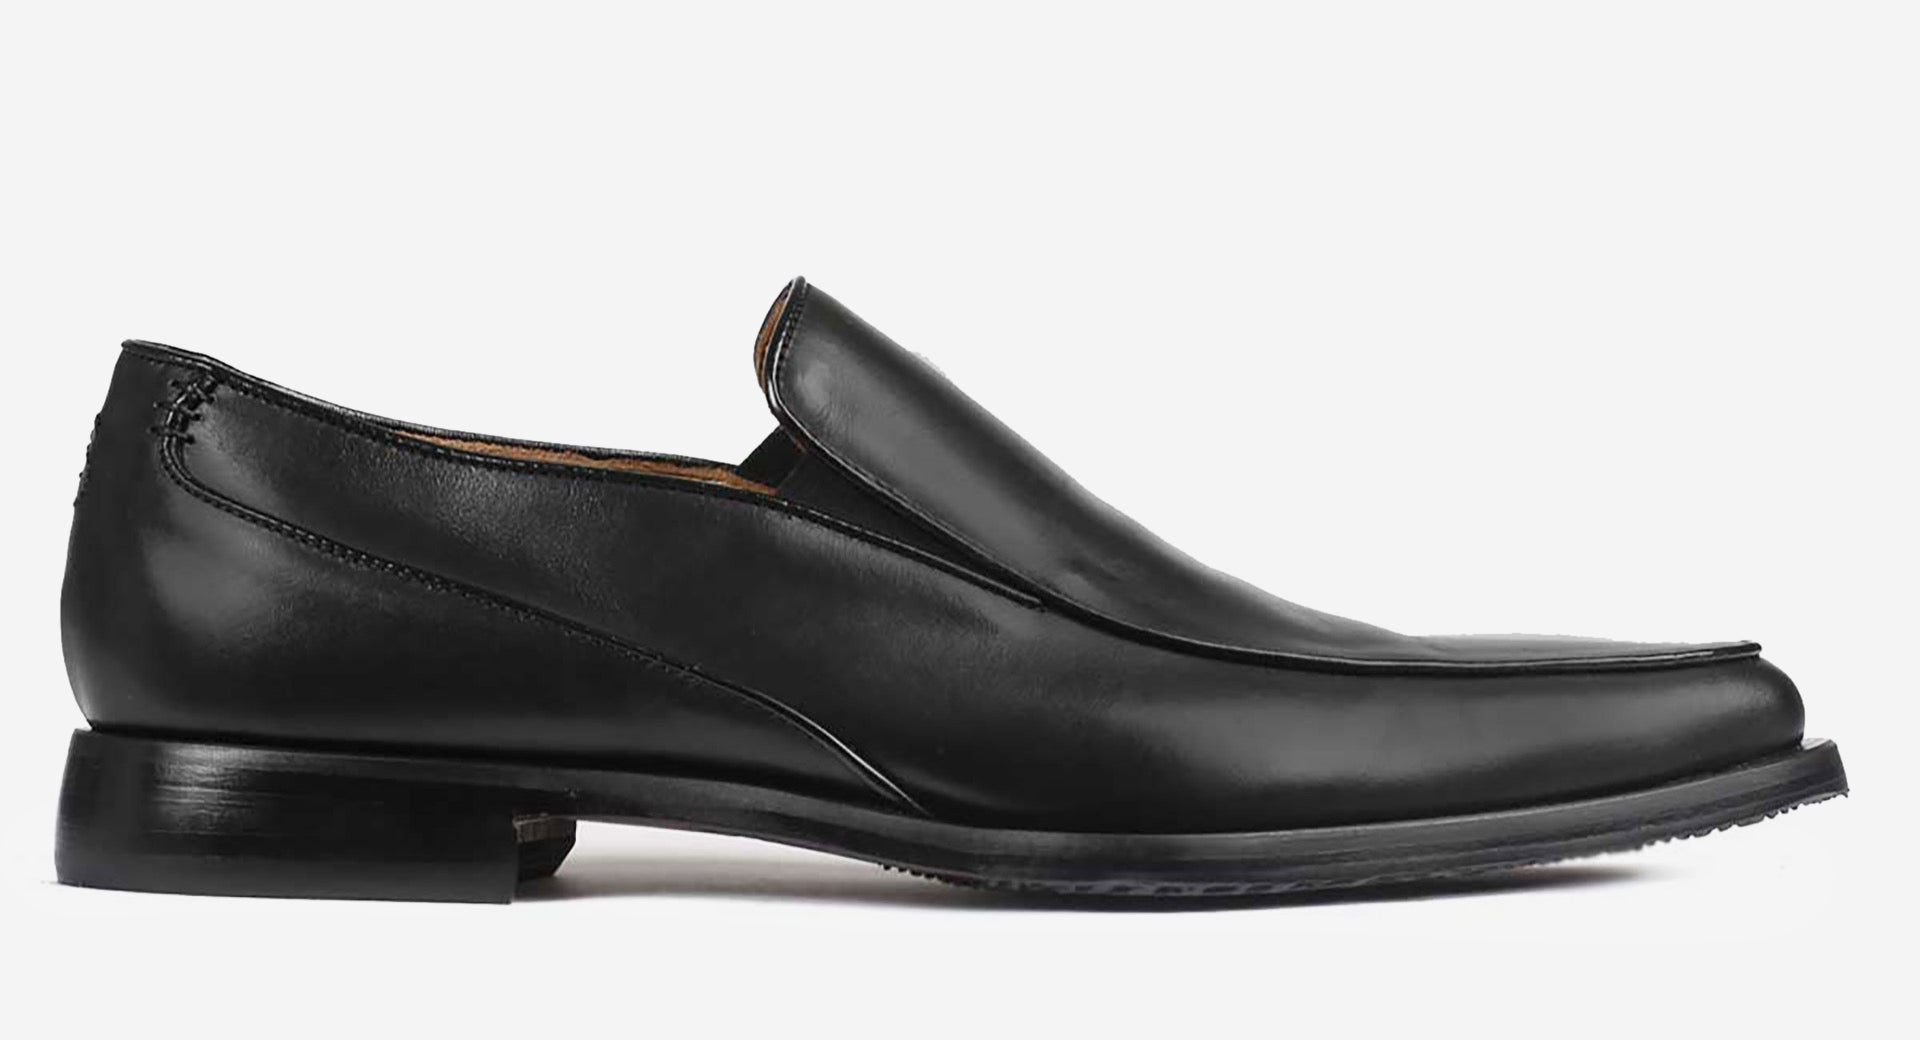 Formal Calf Leather Slip-on Shoes